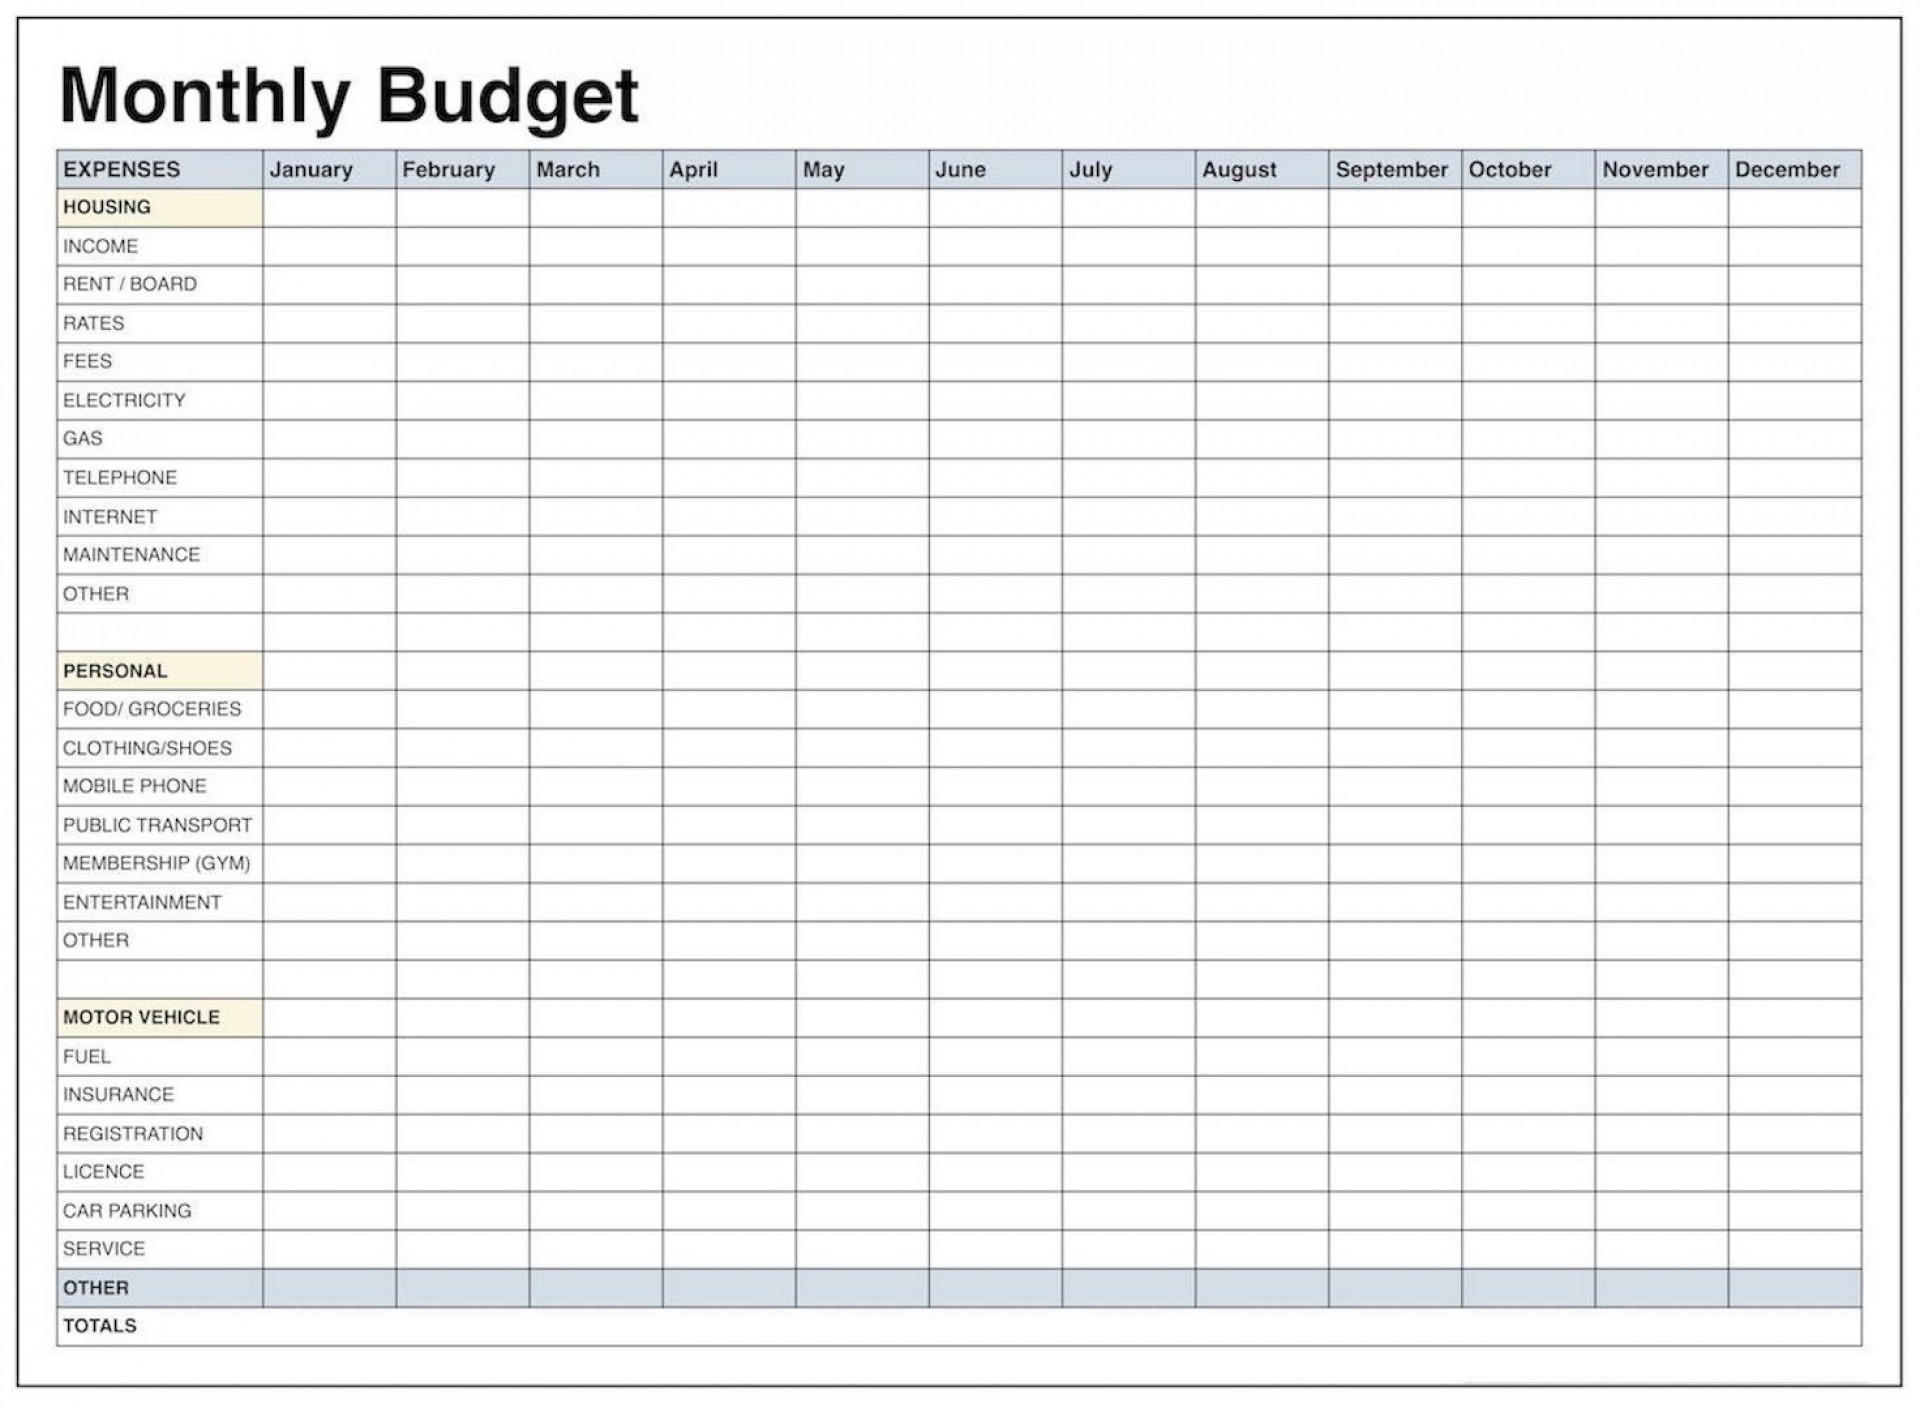 003 Imposing Monthly Budget Sample Excel Design  Template Simple India Personal Free1920